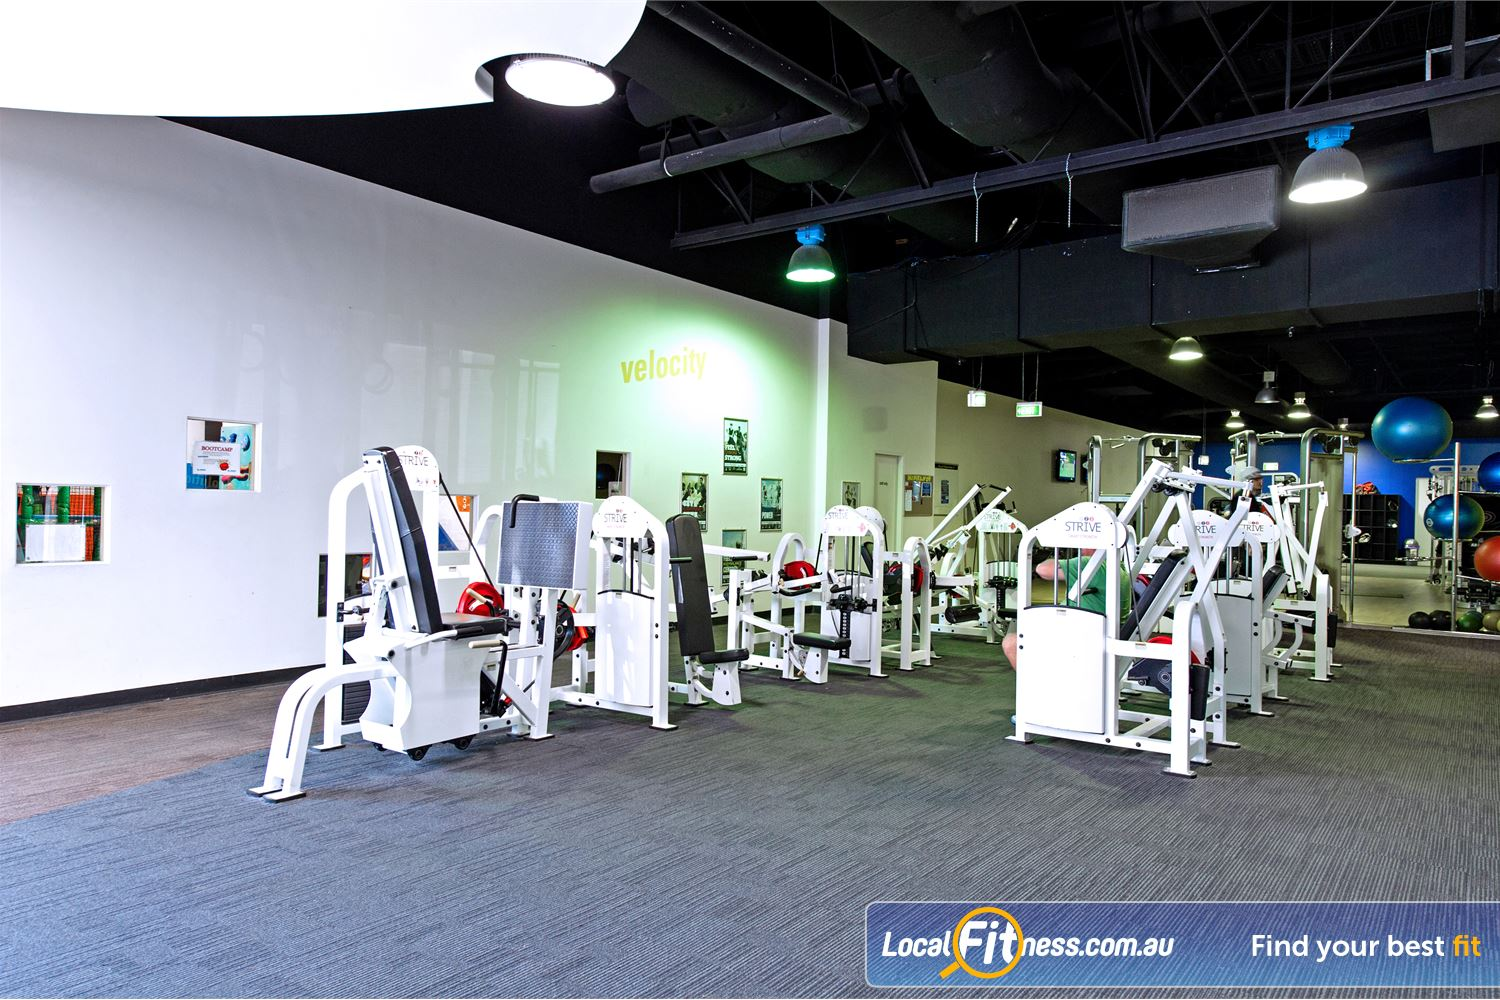 Vibe Health Clubs Blacktown State of the art equipment including the Strive Smart Strength range.